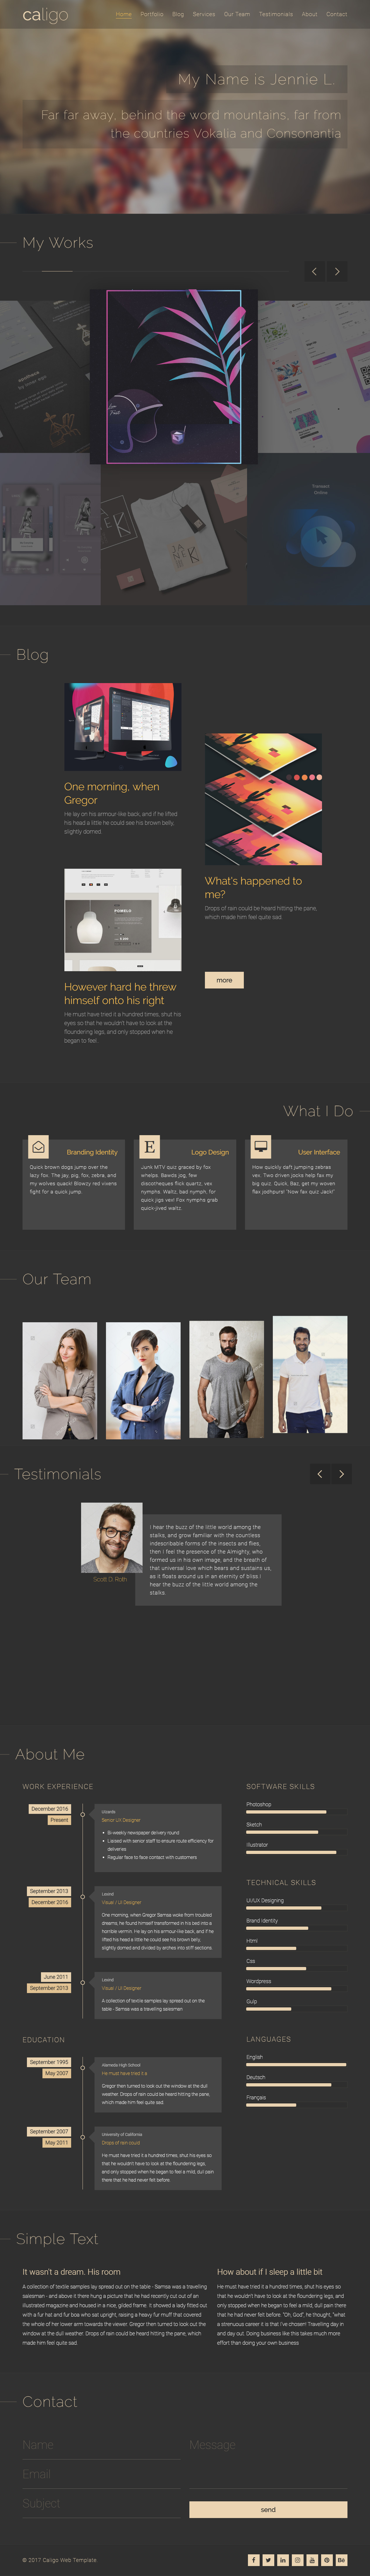 40 Best Freelance Website Templates 2017-2018 - Responsive Miracle